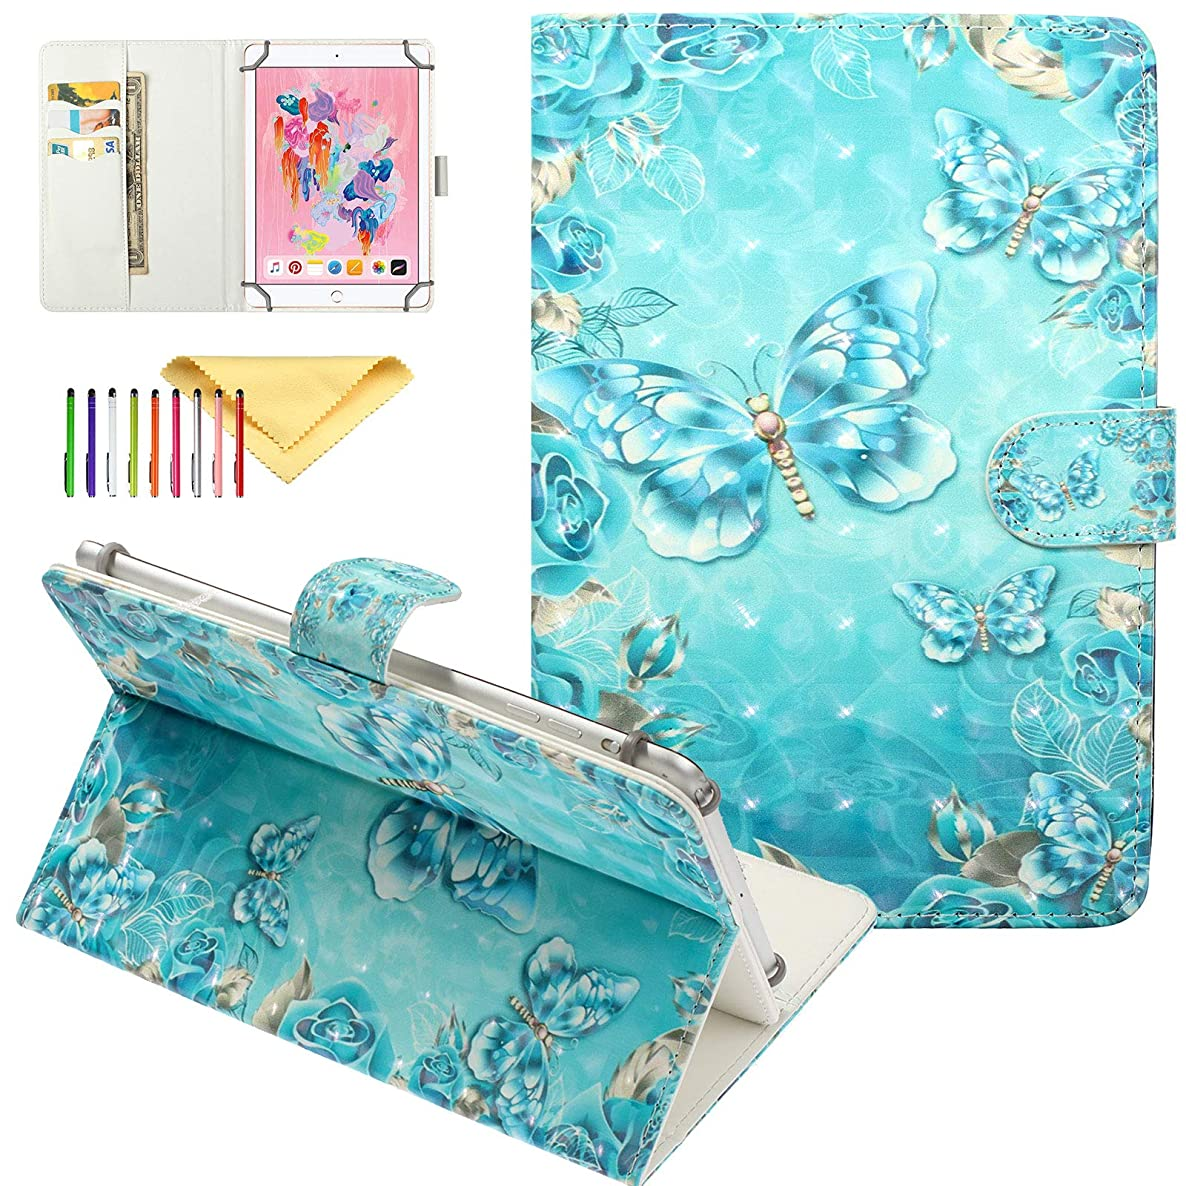 8 Inch Tablet Universal Case, Cookk Folio Stand Wallet Skin Case Cover for Samaung Galaxy Tab 8.0 Inch, iPad Mini 5/4/3/2/1 7.9 Inch Case and More 7.5-8.5 Inch Tablet, Diamond Butterfly